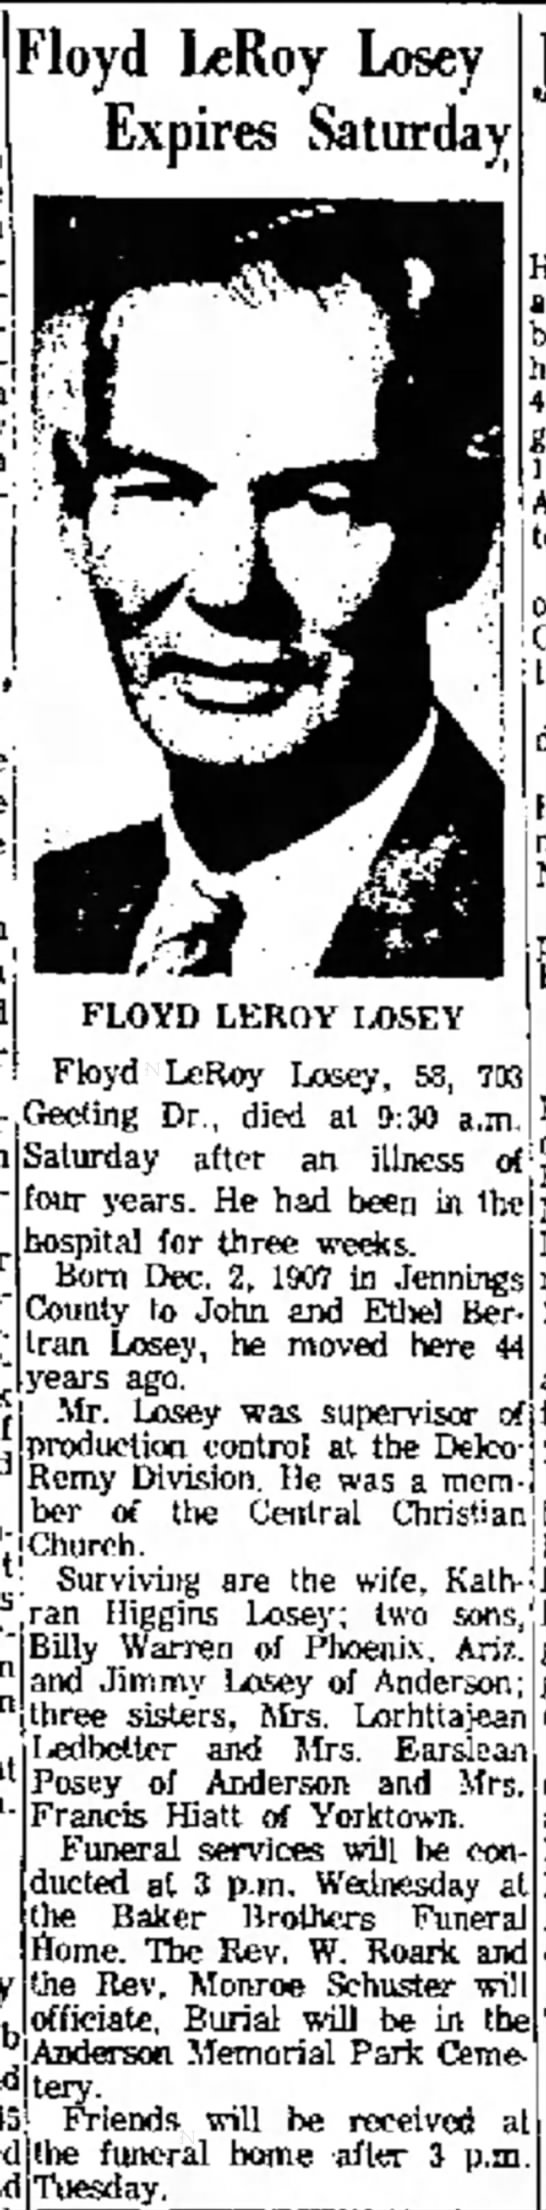 Anderson Daily bulletin (Anderson, Indiana) Oct. 10, 1966 pg 6 - l u b the Floyd LeRoy Losey Expires Saturday...